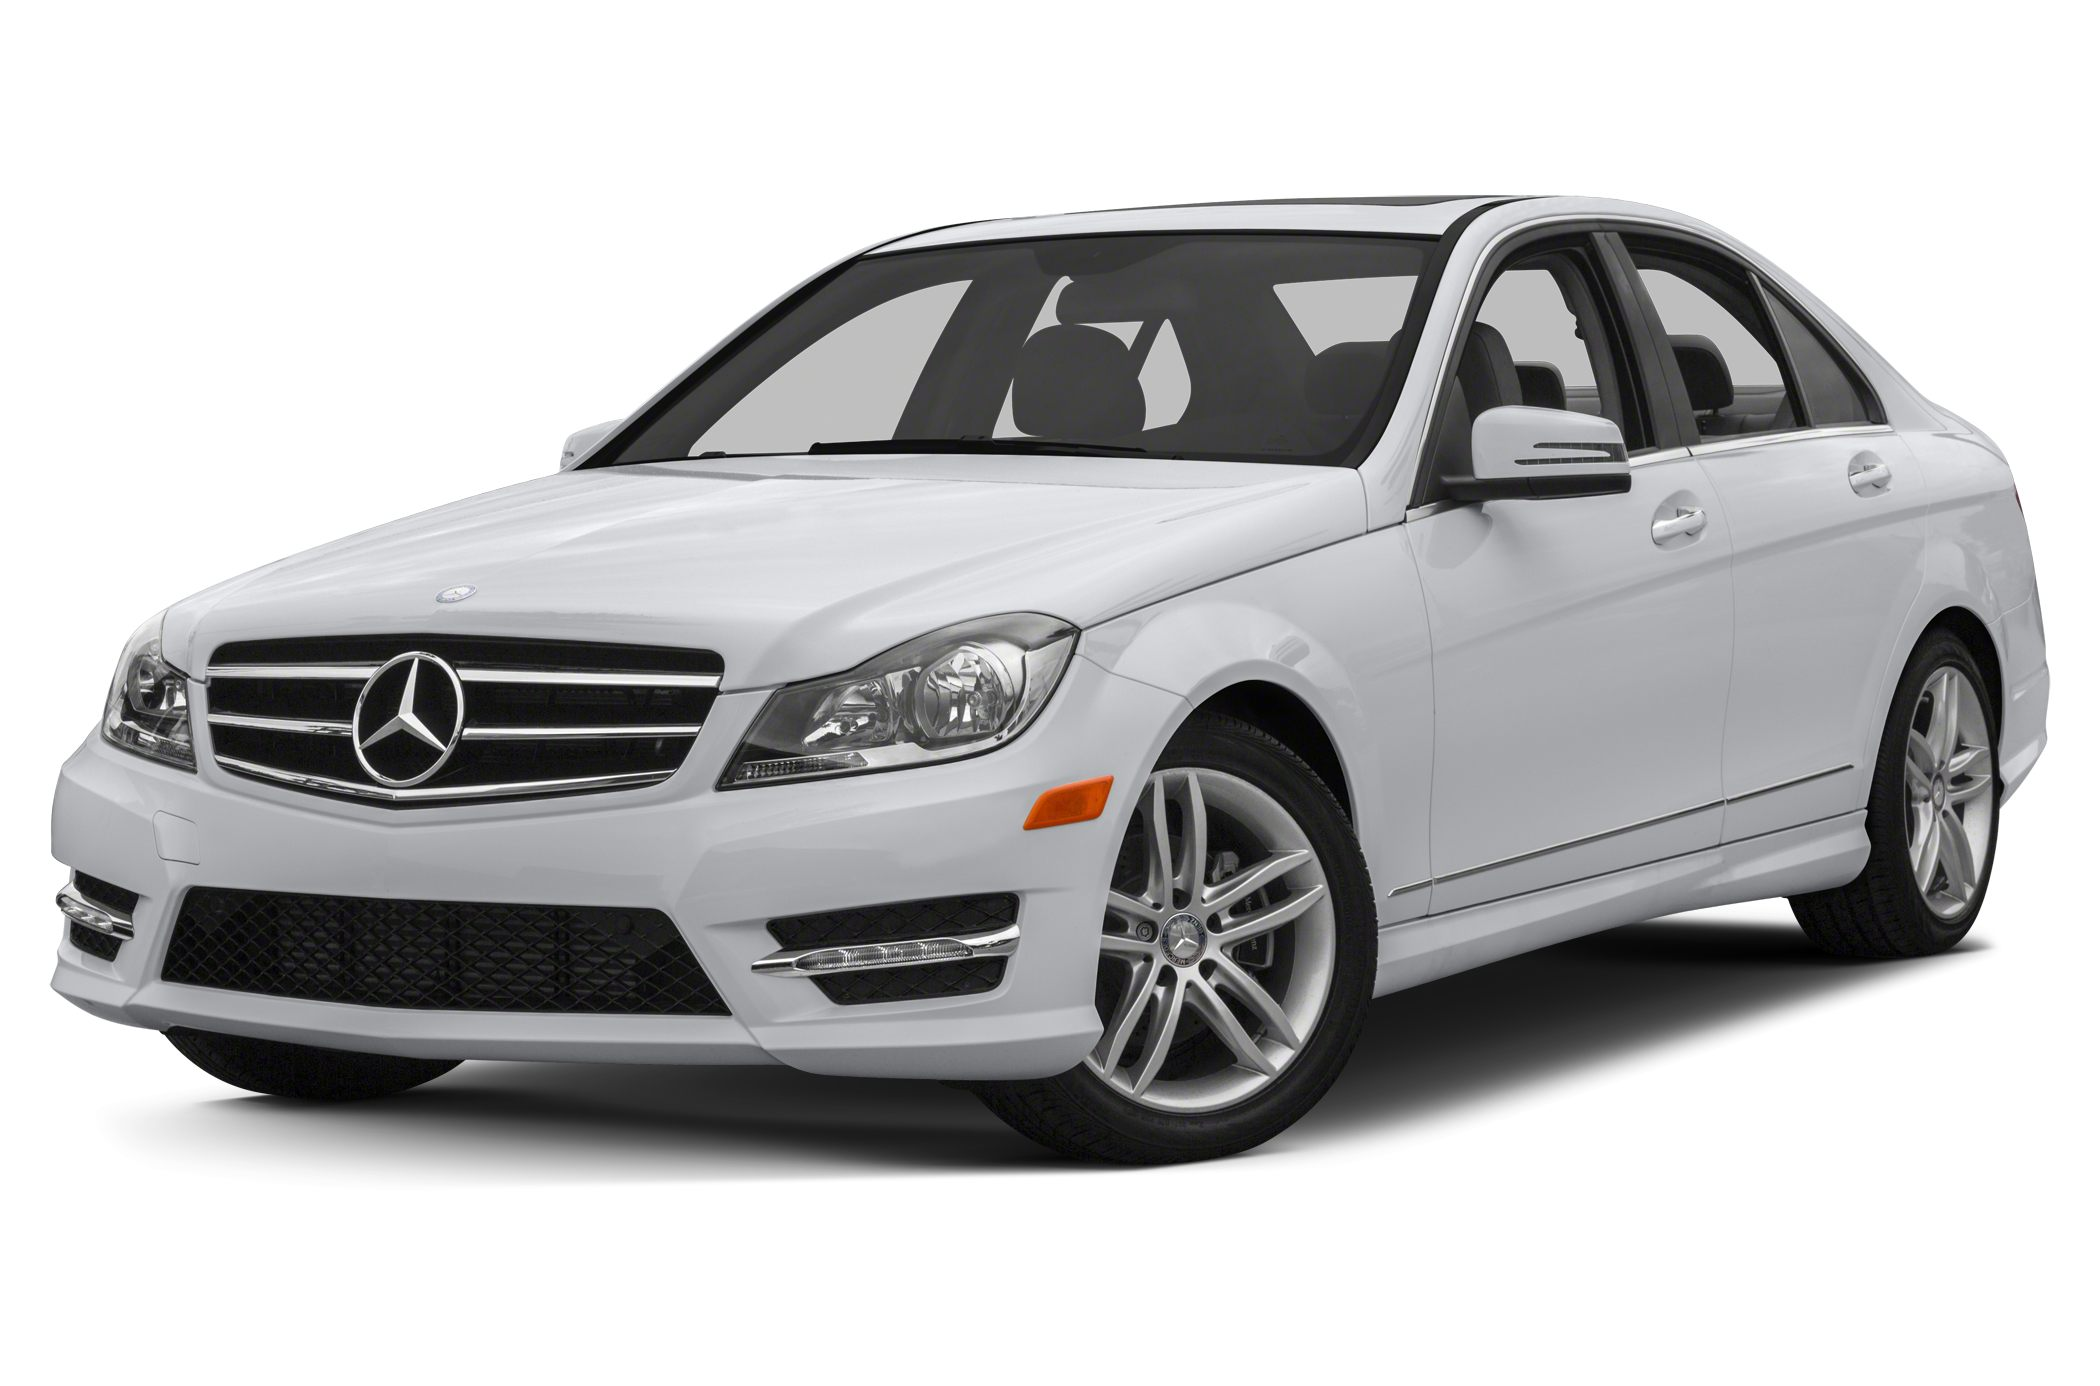 2014 Mercedes-Benz C-Class C250 Sport Sedan for sale in Boerne for $38,060 with 10 miles.